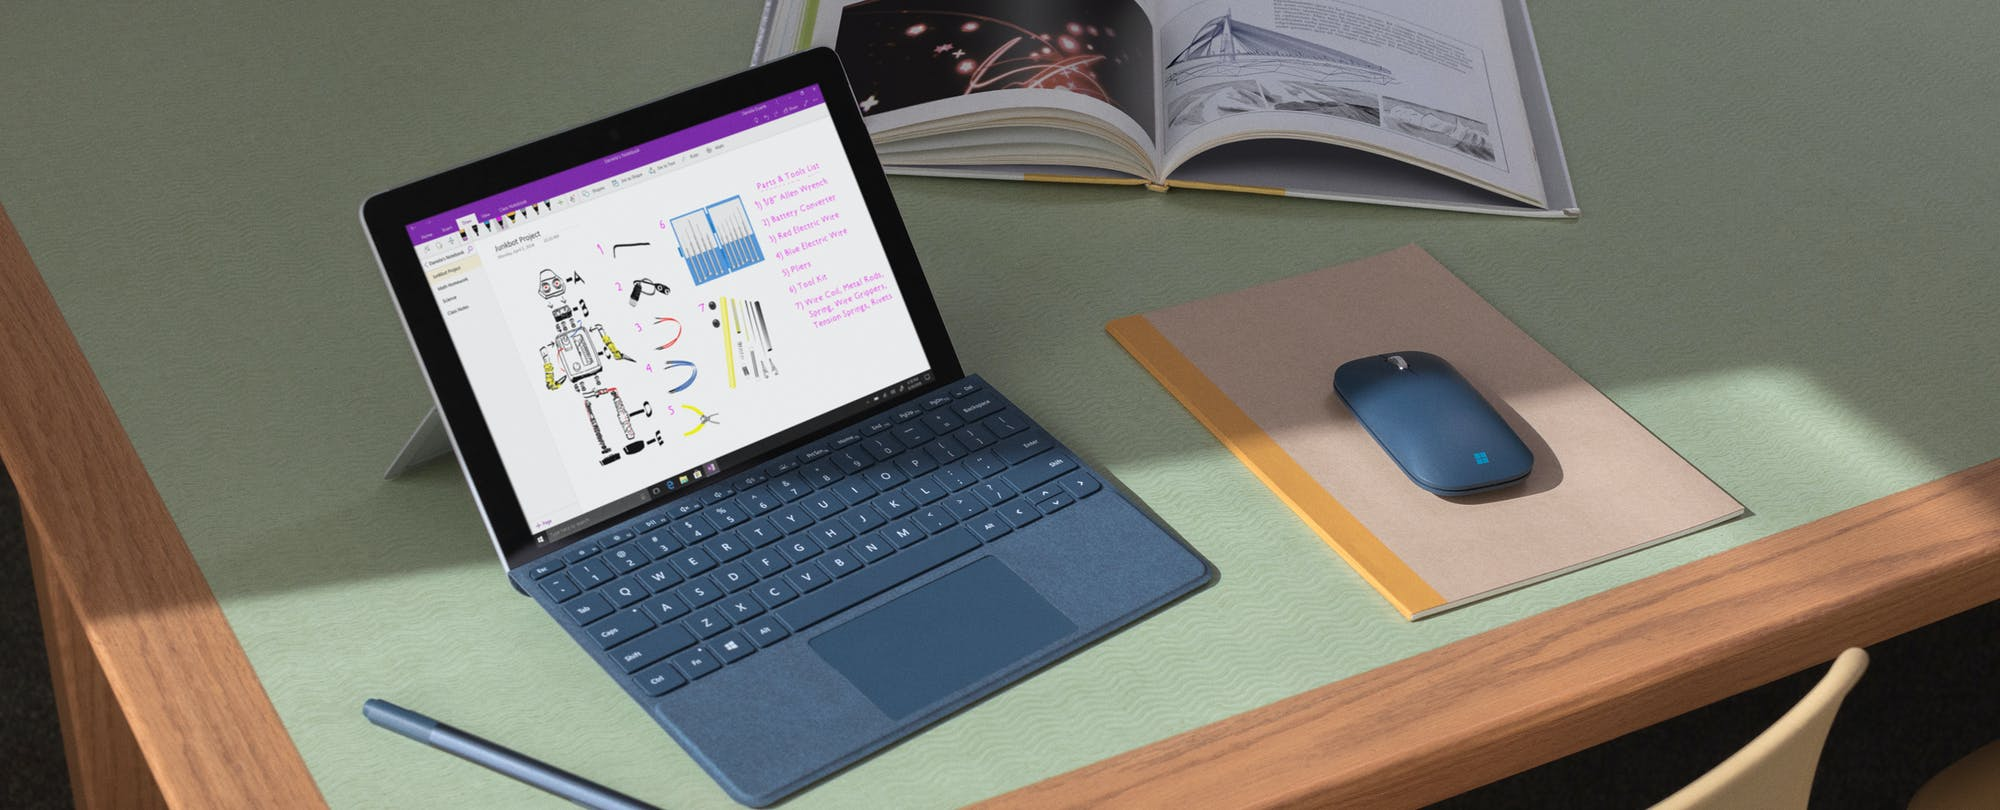 Microsoft Hopes to Revive Its Education Tablet Efforts With the New $399 Surface Go